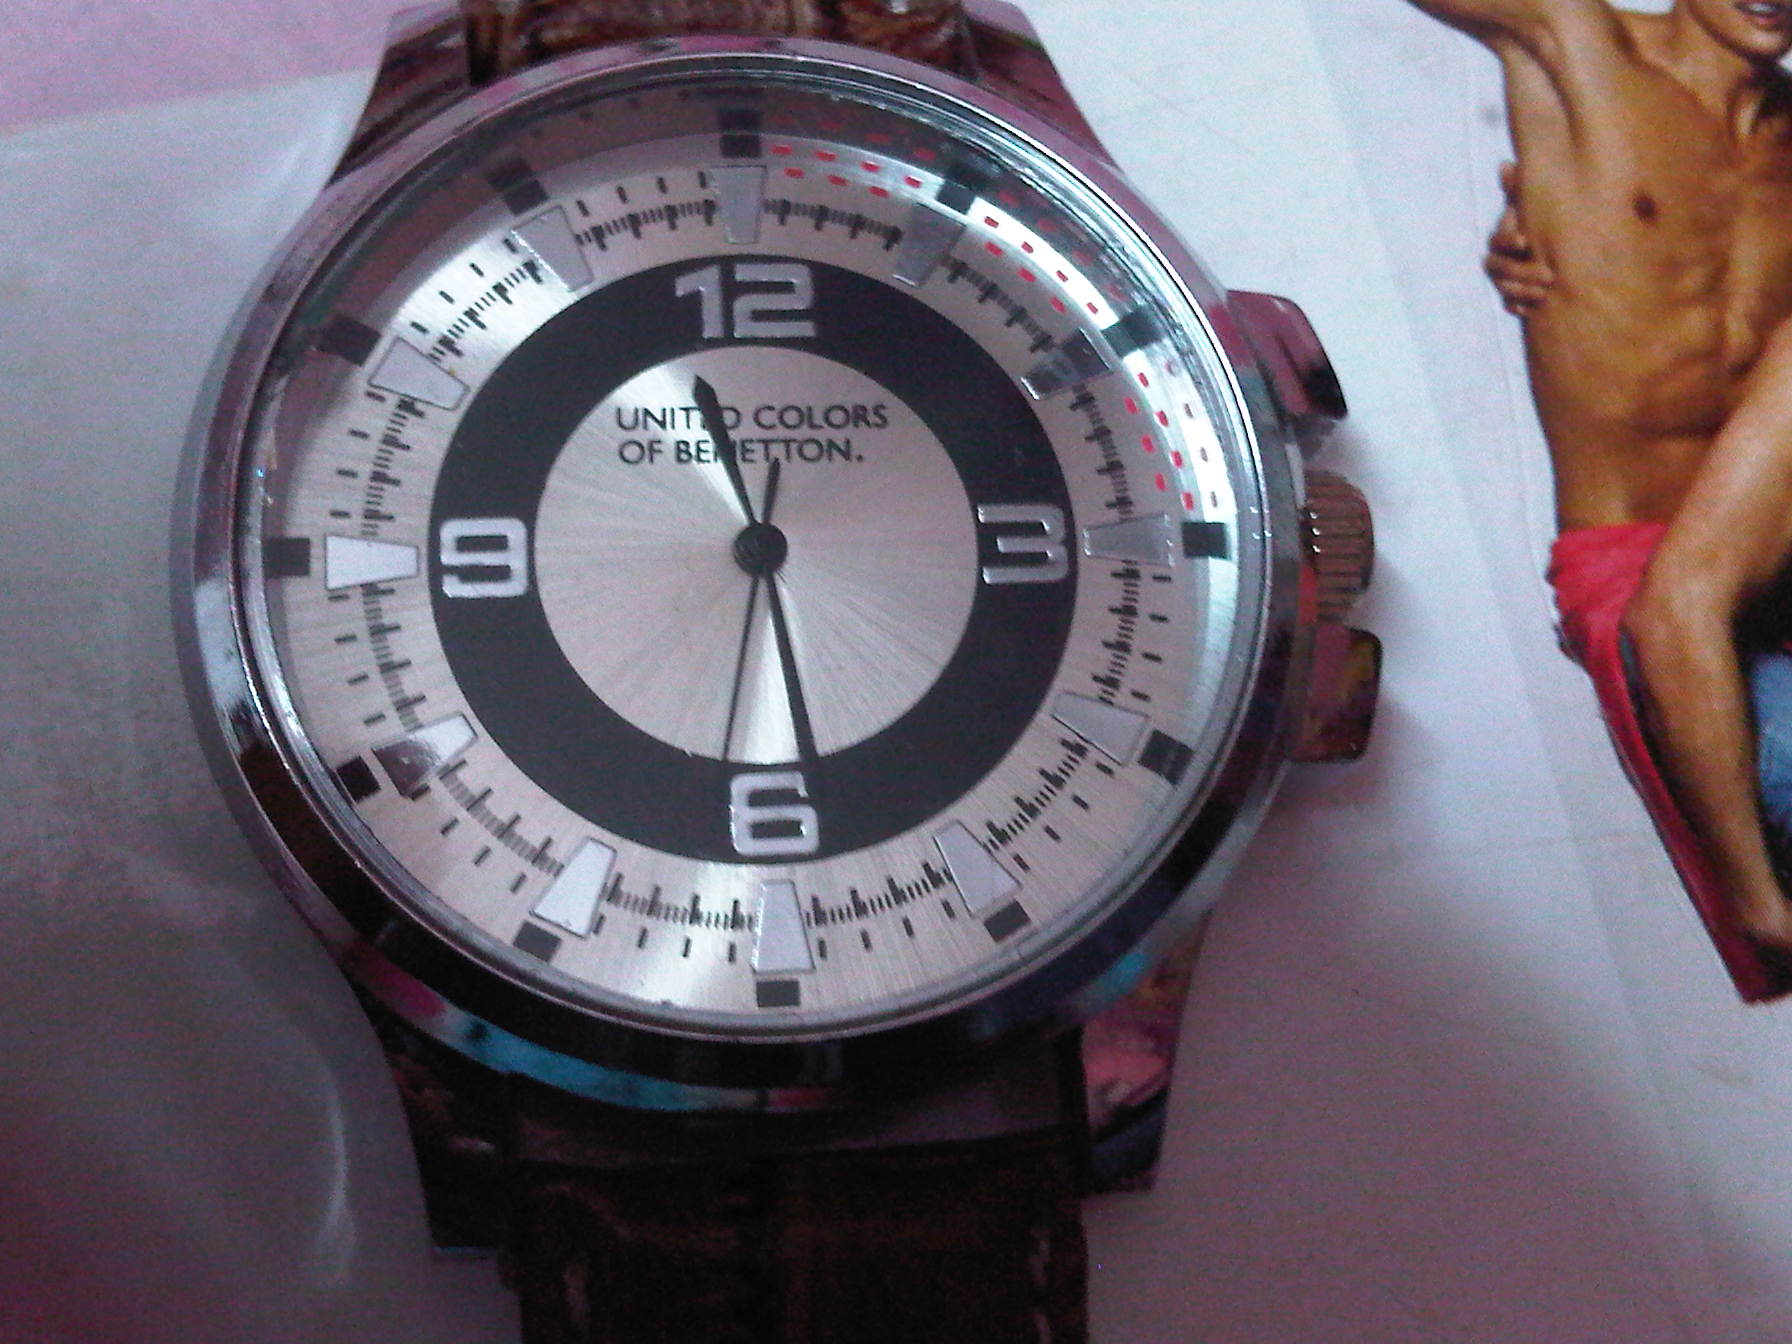 United colors of benetton men 39 s watch for sale best deals with price comparison online shopping for Benetton watches